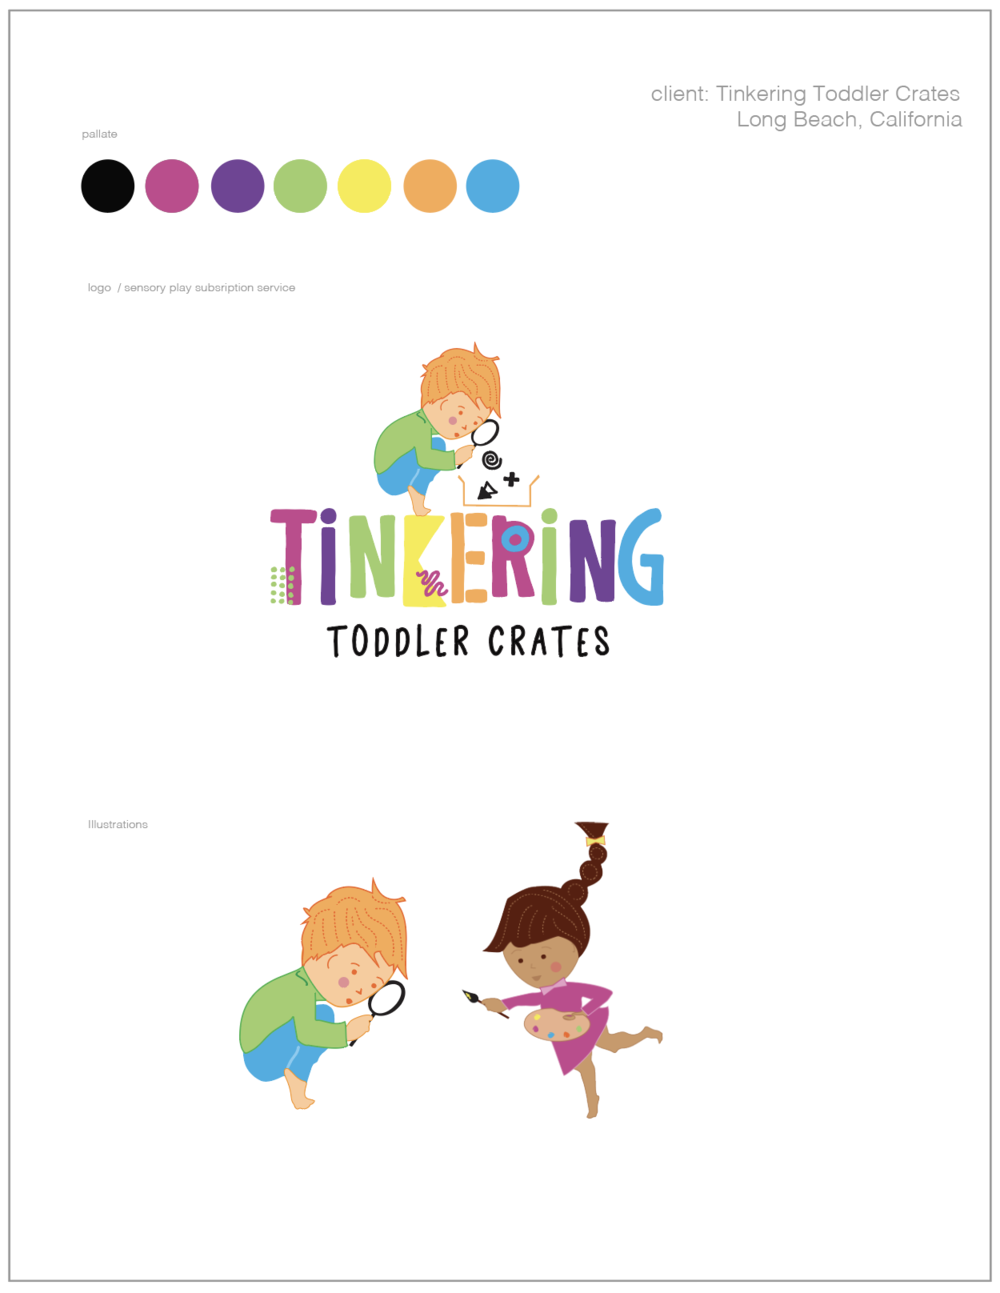 client: Tinkering Toddler Crates - logo design, vector illustrations